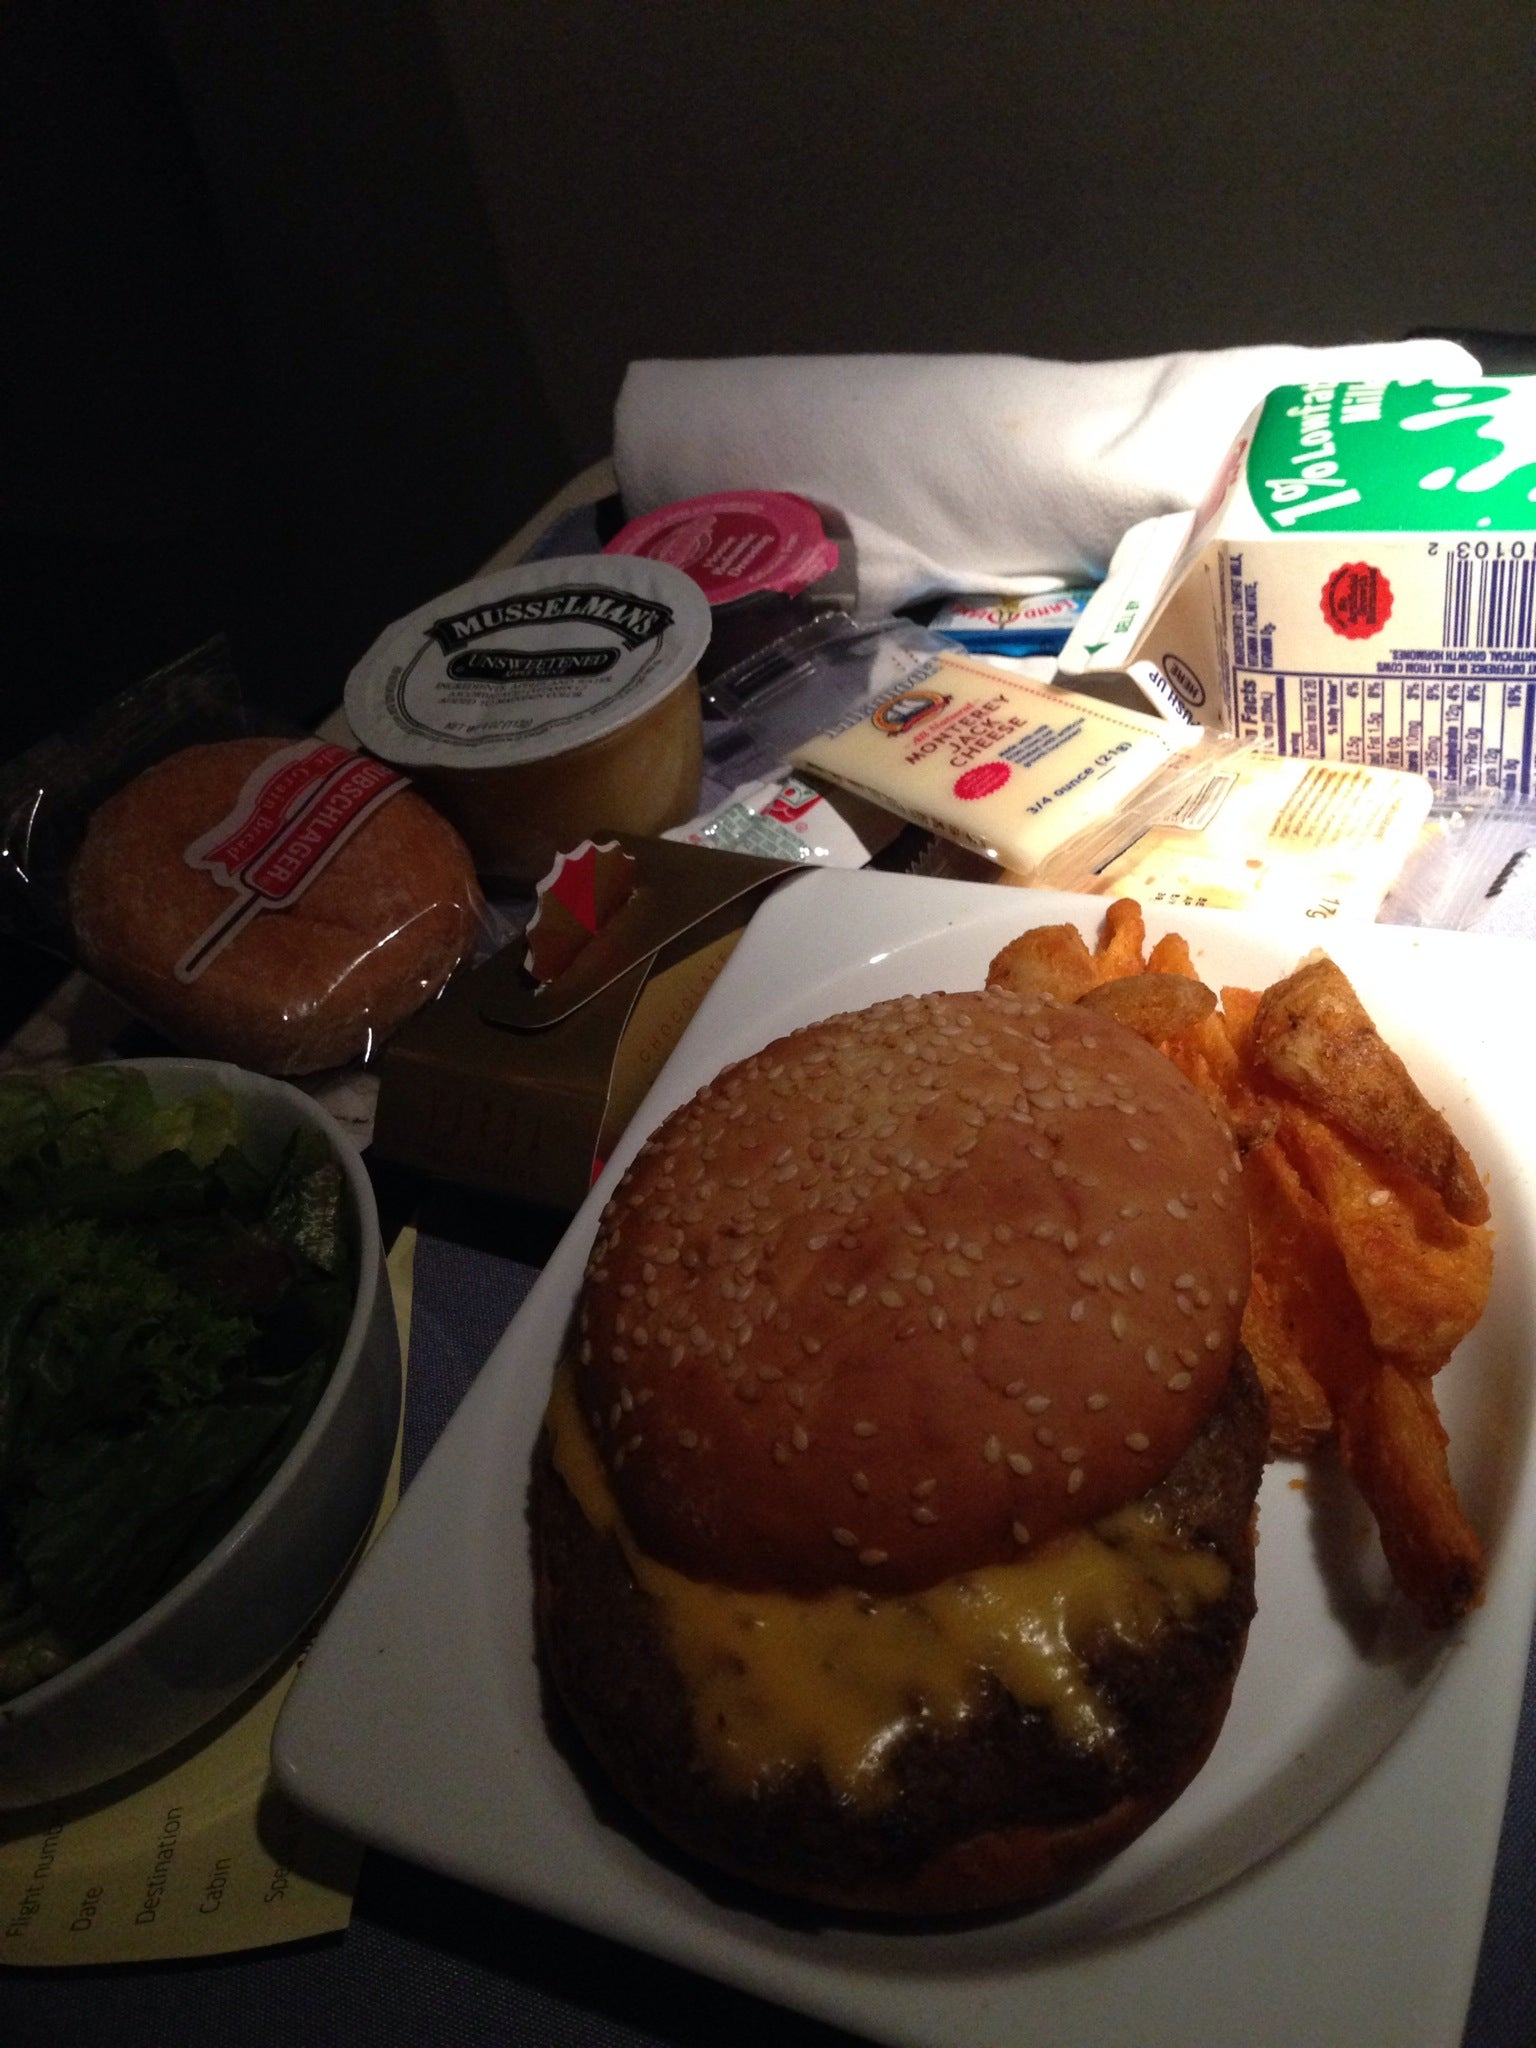 United Airline Child Meal